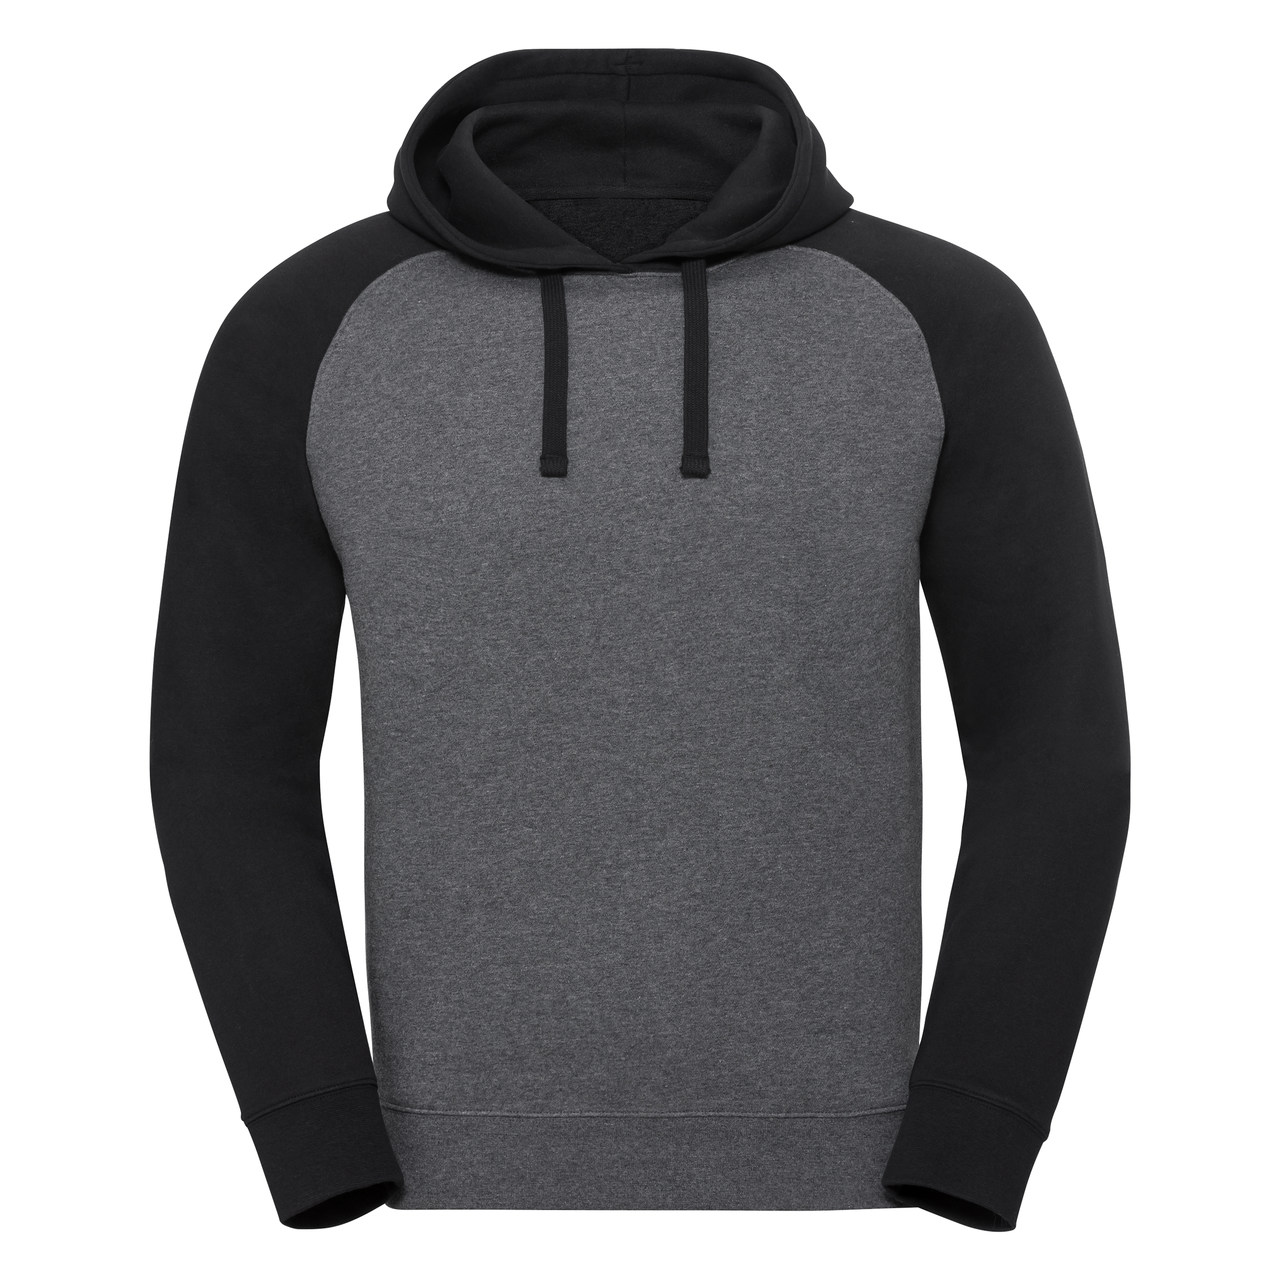 Bluza z kapturem Authentic Hooded  Baseball Sweat R269M 75% bawełny ring-spun; 21% poliestru;4% wiskozy 280g